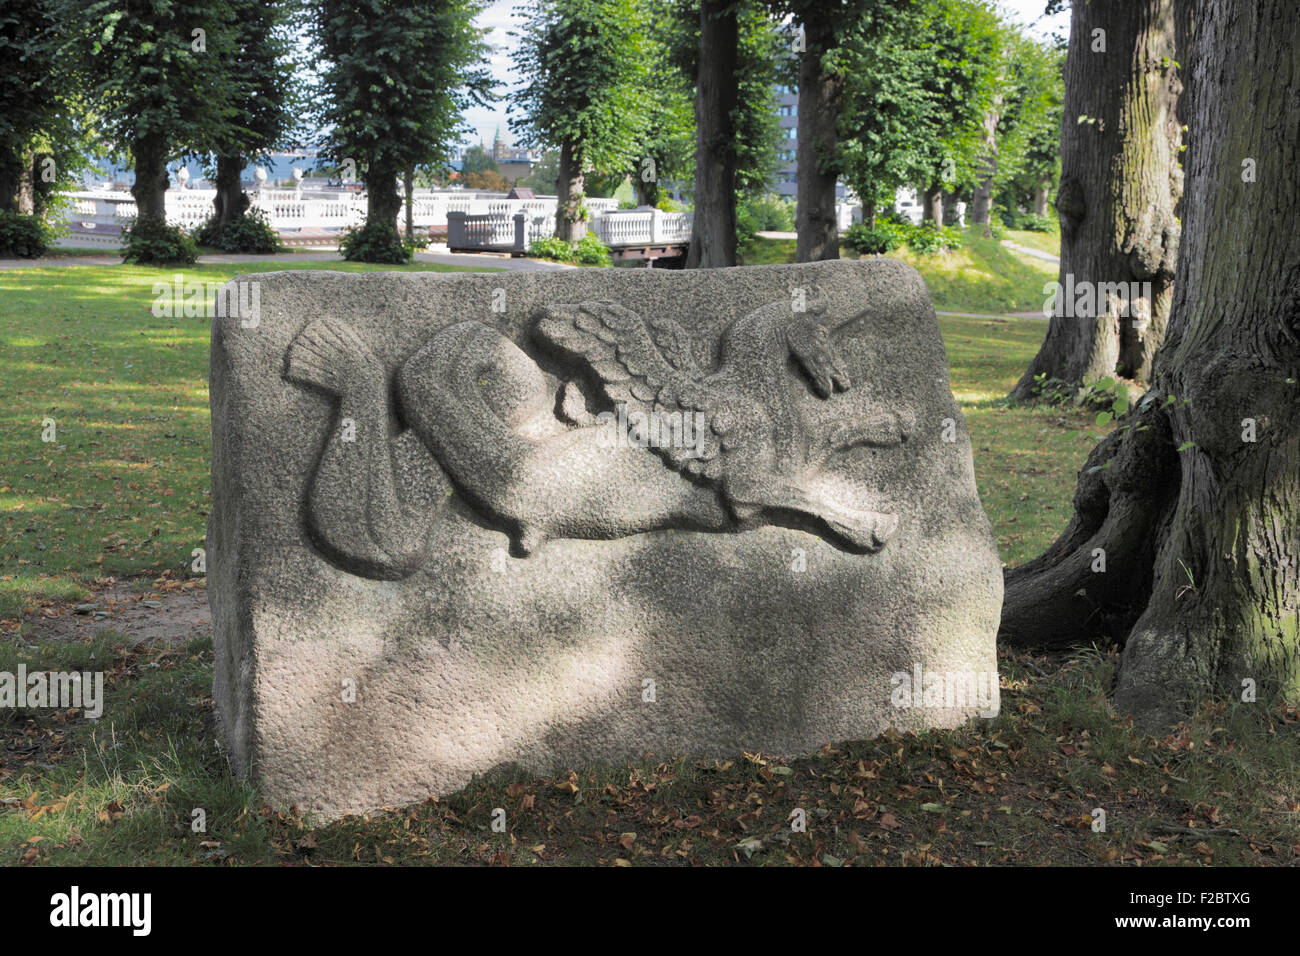 Hamlet's Grave in Marienlyst Palace Garden, Elsinore.  A large granite stone shaped like a sarcophagus. Kronborg - Stock Image